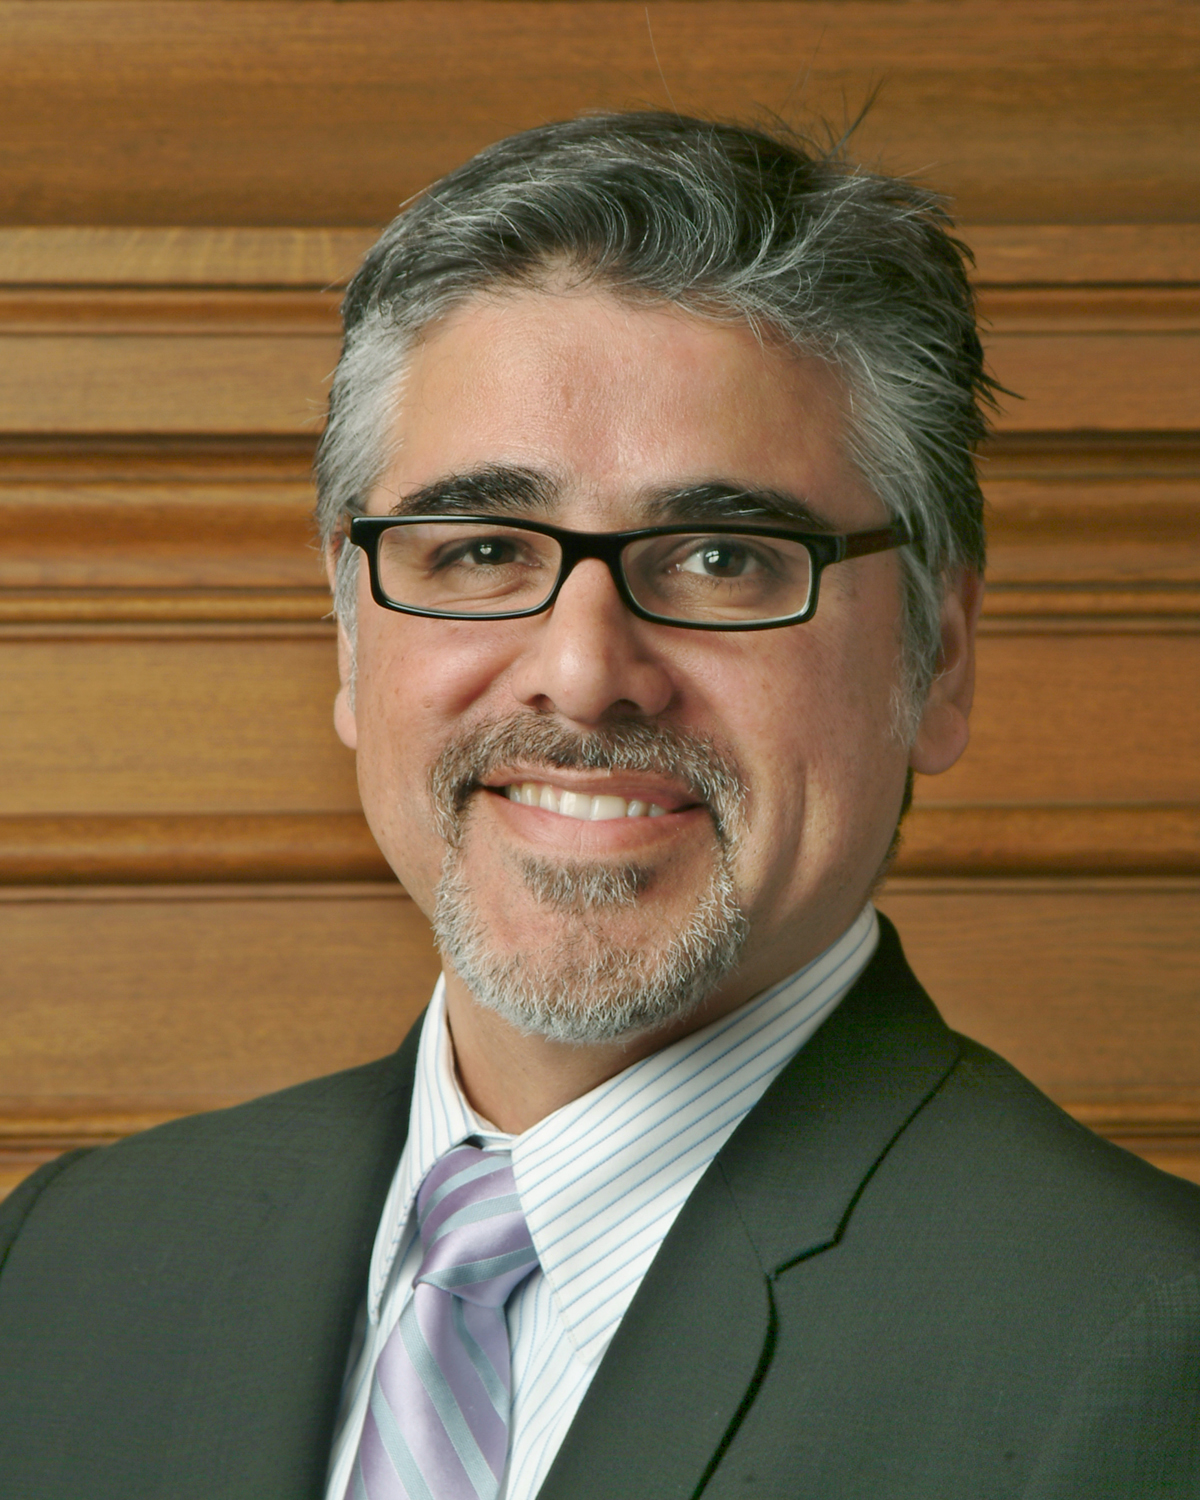 John-Avalos3, Local hire is the law! Great victory for the people, Local News & Views